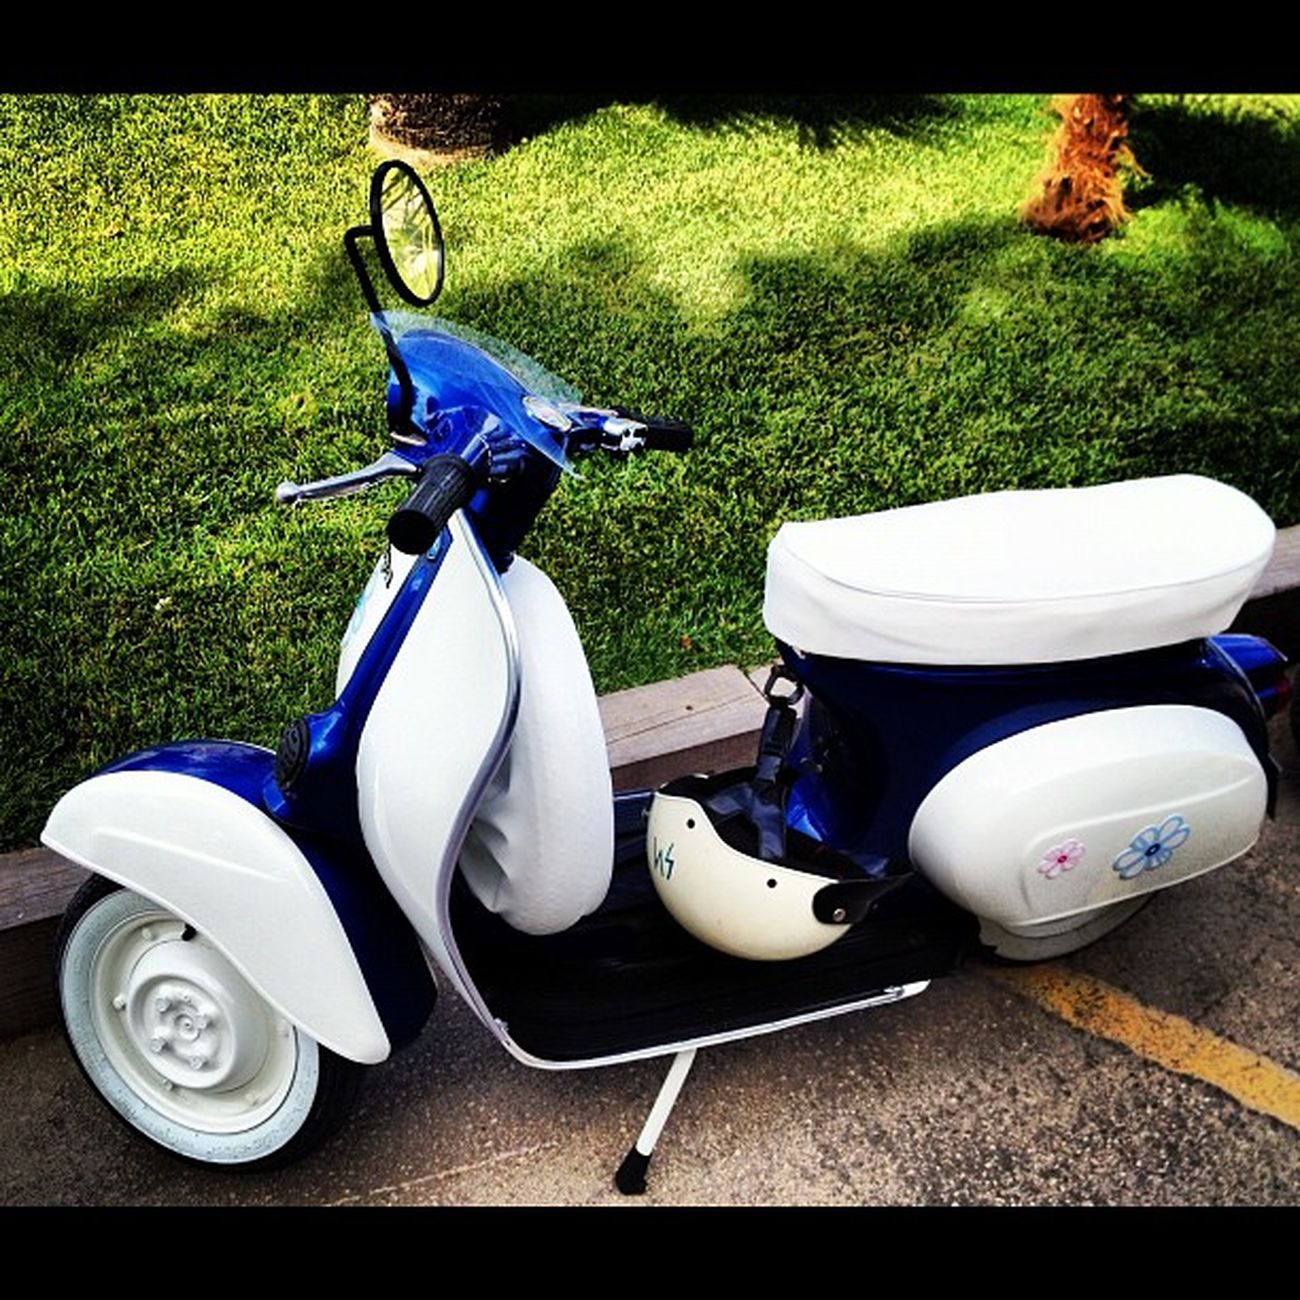 #arazede #vespa #cantanhede #casamento #instagram #instagood #iphone4s #iphonesia #iphoneonly #photooftheday #portugaldenorteasul #igersportugal #summer #quintadasoliveiras Summer IPhone4s Vespa Iphoneonly Photooftheday Iphonesia Instagram Casamento Instagood Igersportugal Portugaldenorteasul Cantanhede Arazede Quintadasoliveiras